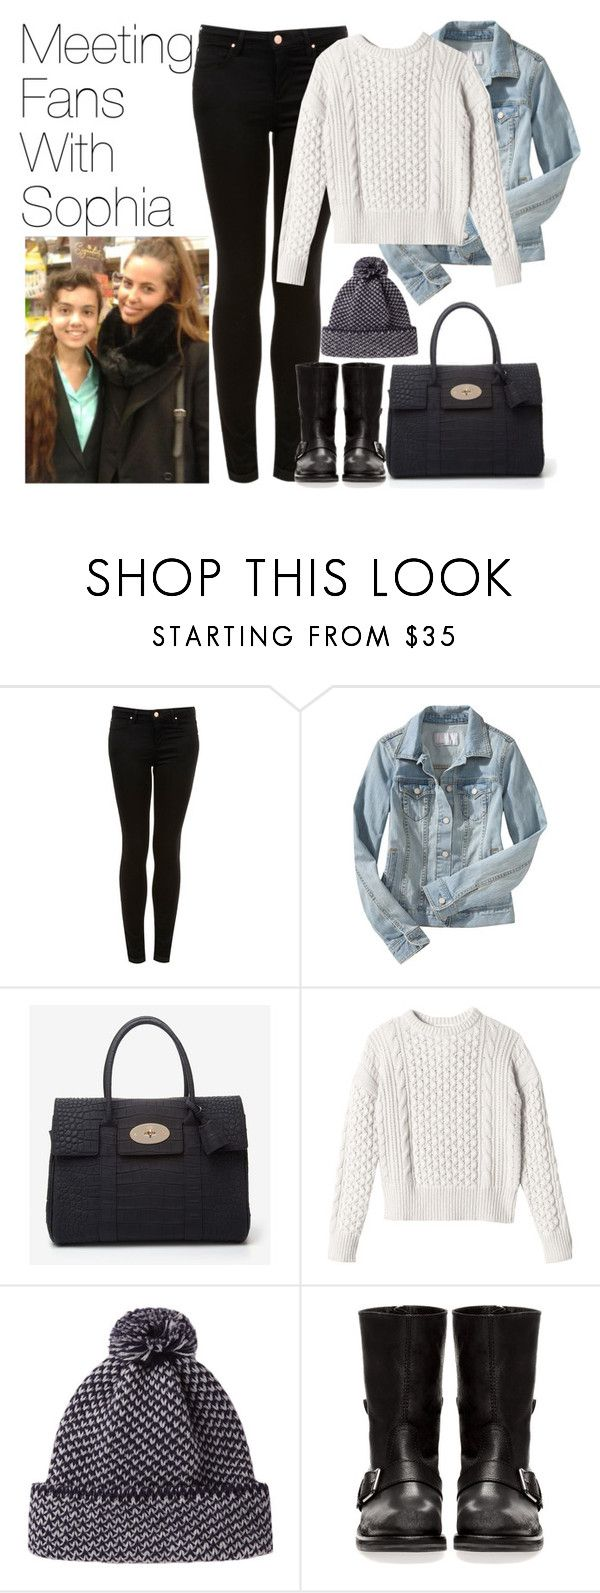 """""""Meeting Fans With Sophia"""" by onedirectionimagineoutfits99 ❤ liked on Polyvore featuring Topshop, Old Navy, Mulberry, Rebecca Taylor, Peter Jensen and Pull&Bear"""